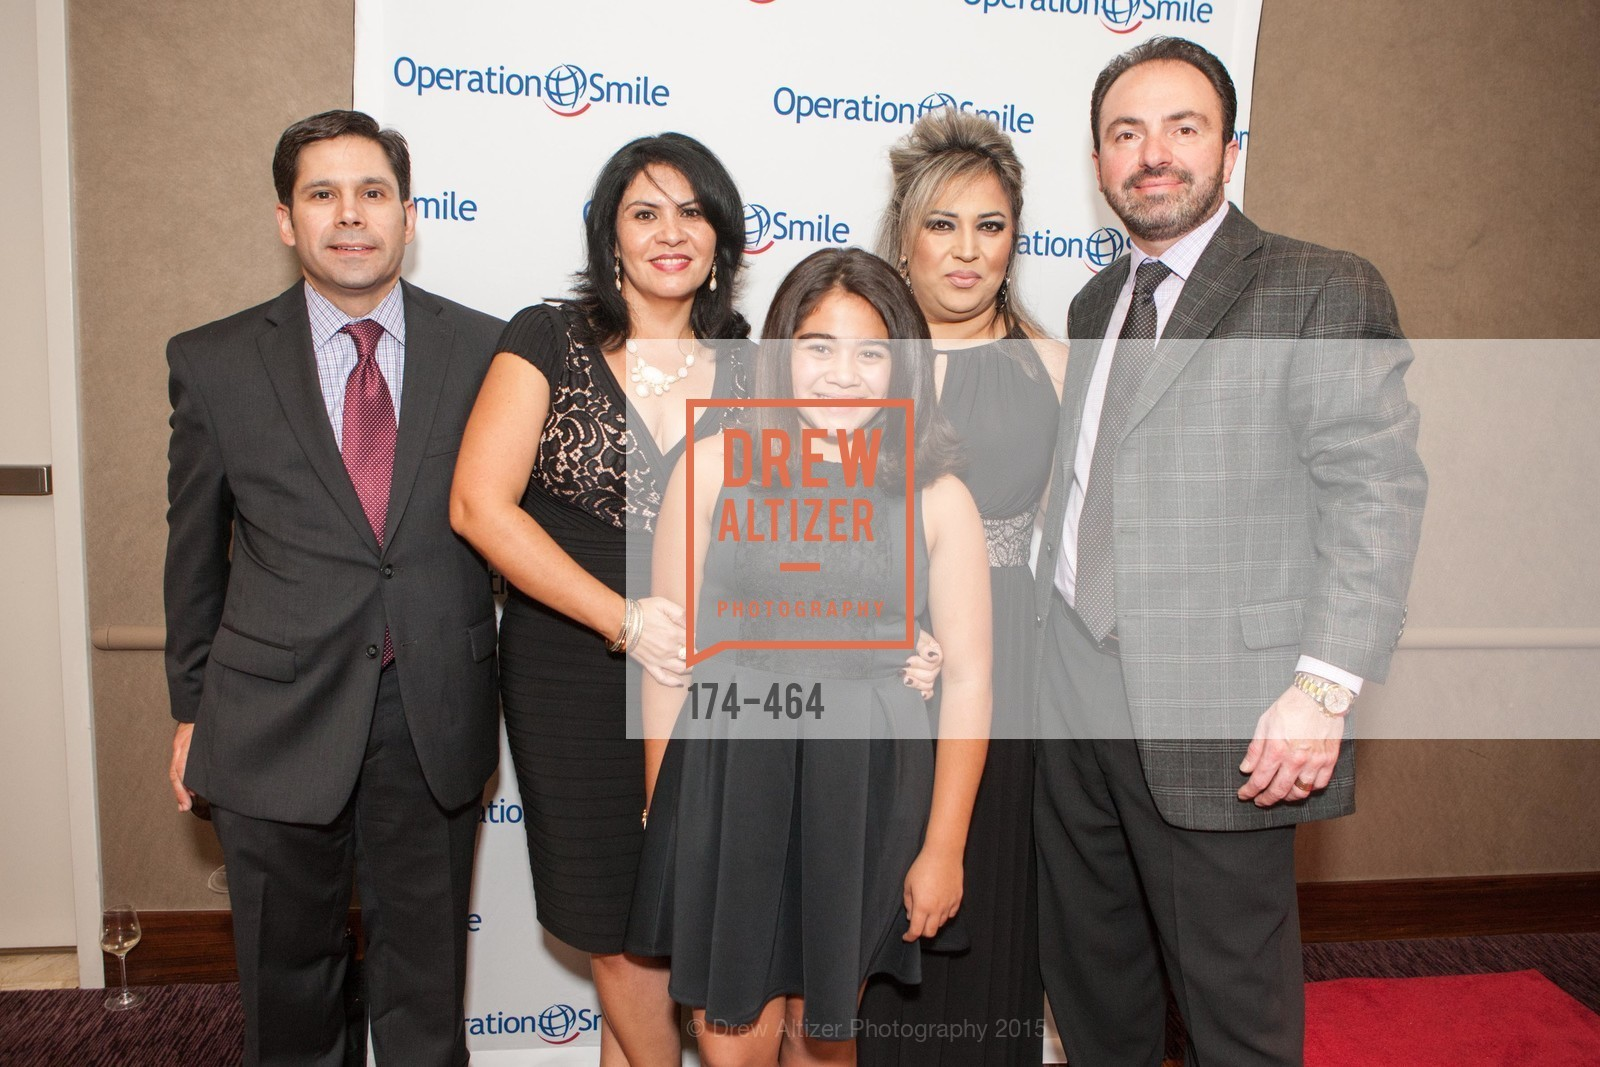 Gary Barrera, Fiorella Barrera, Arianna Barrera, Nilou Ipaktchi, Fred Ipaktchi, Operation Smile Presents THE SAN FRANCISCO 2015 SMILE GALA, InterContinental Hotel, November 7th, 2015,Drew Altizer, Drew Altizer Photography, full-service agency, private events, San Francisco photographer, photographer california